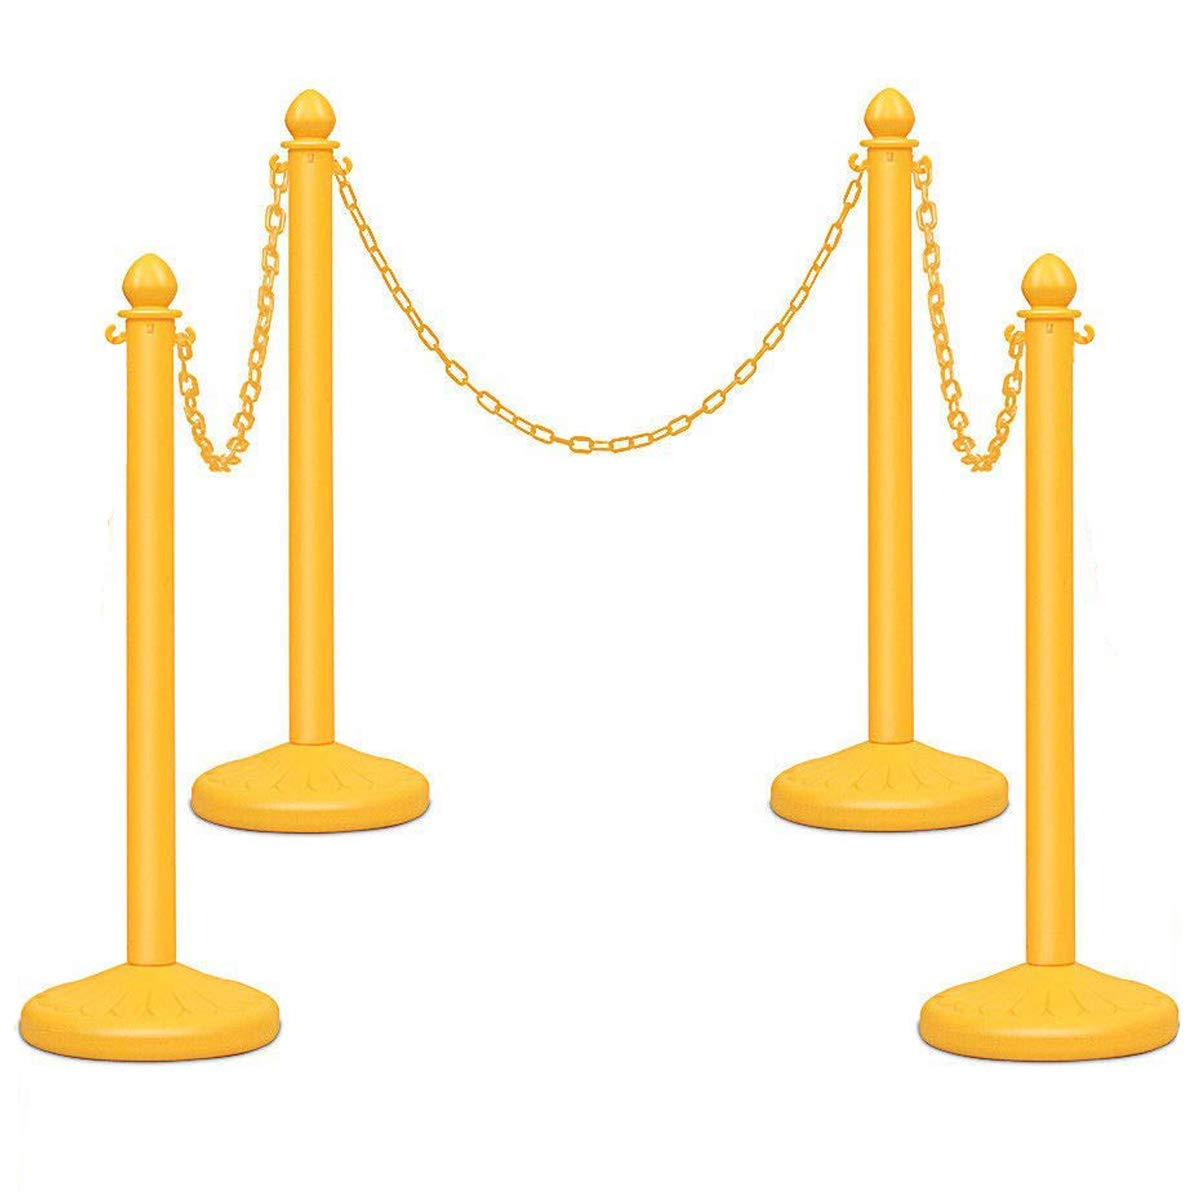 Reliancer 4 Pack Plastic Stanchions set w/3PCS 40'' Link Chain Sentry Stanchion Kit w/ Fillable Base Crowd Control Safety Stanchion Barriers Easy Connect Assembly Outdoor and Indoor Posts Queue Barrier by Reliancer